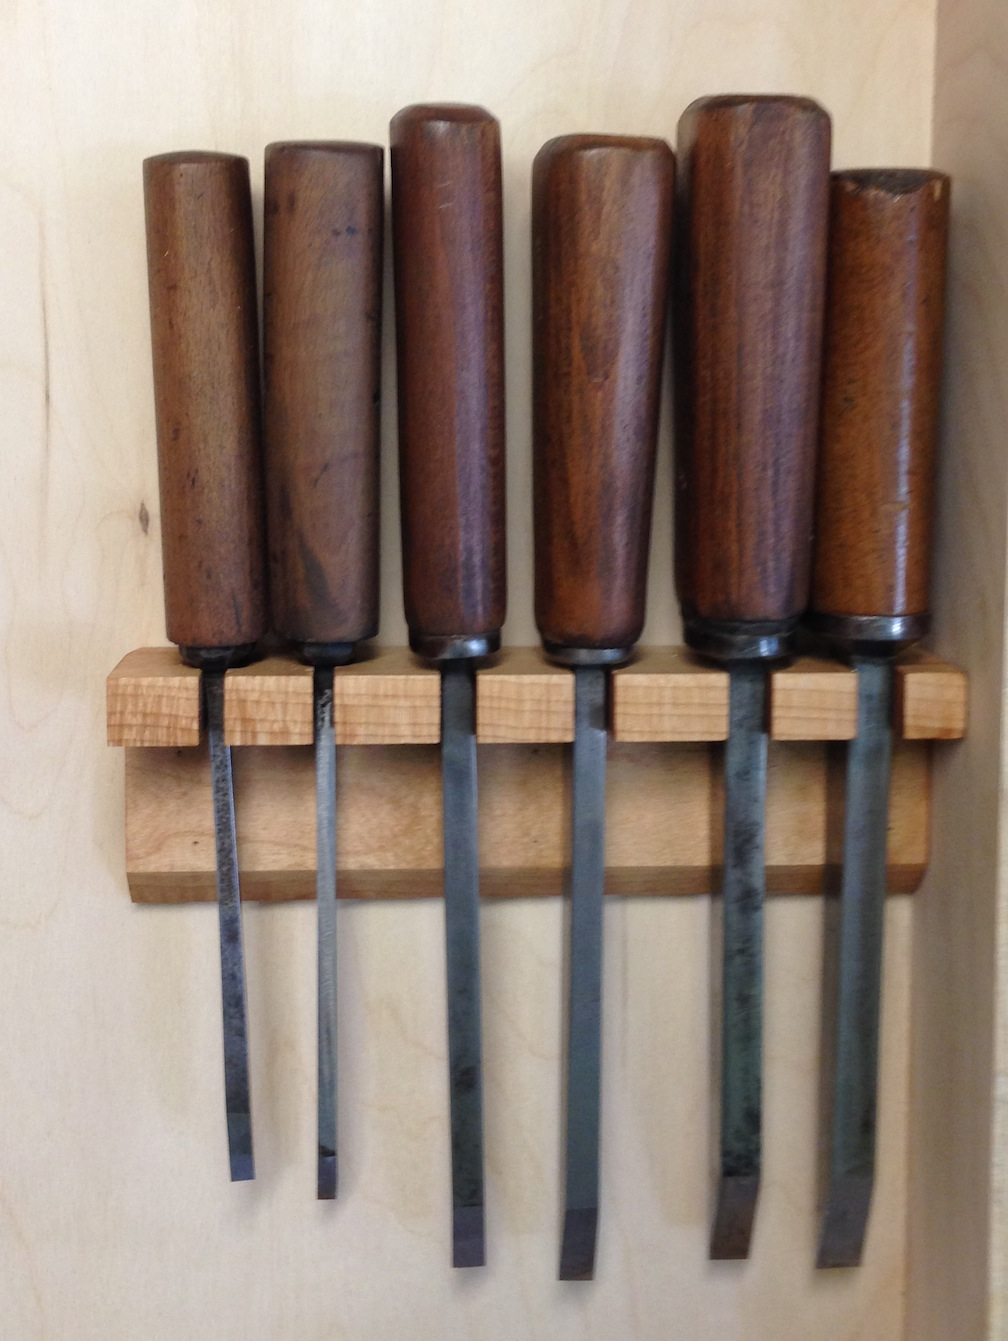 Chisel Rack For My Hand Tool Cabinet Mcglynn On Making